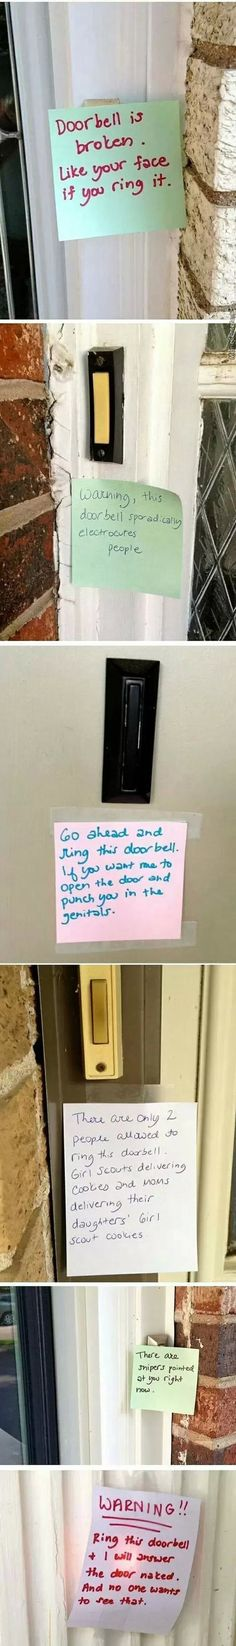 funny-doorbell-notes-threats-prank-warning